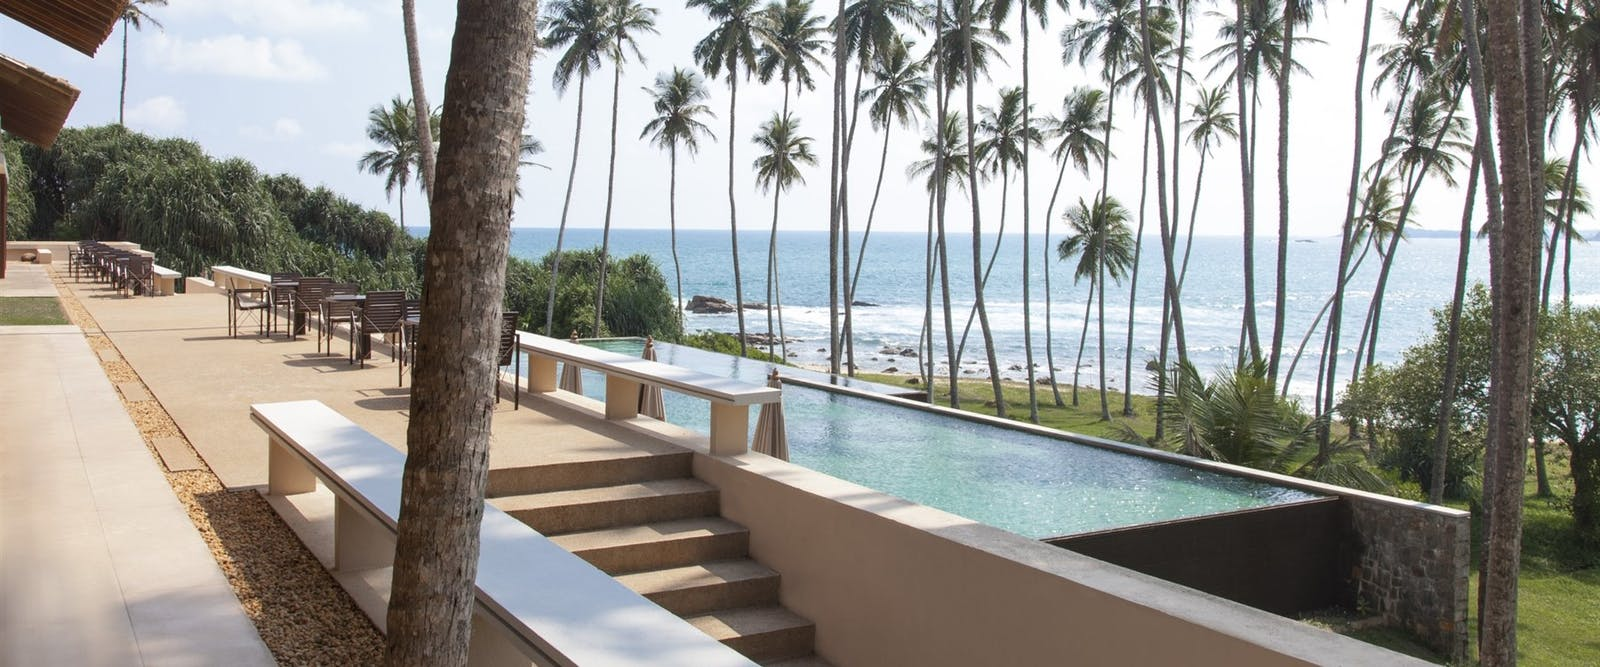 Swimming Pool at Amanwella, Sri Lanka